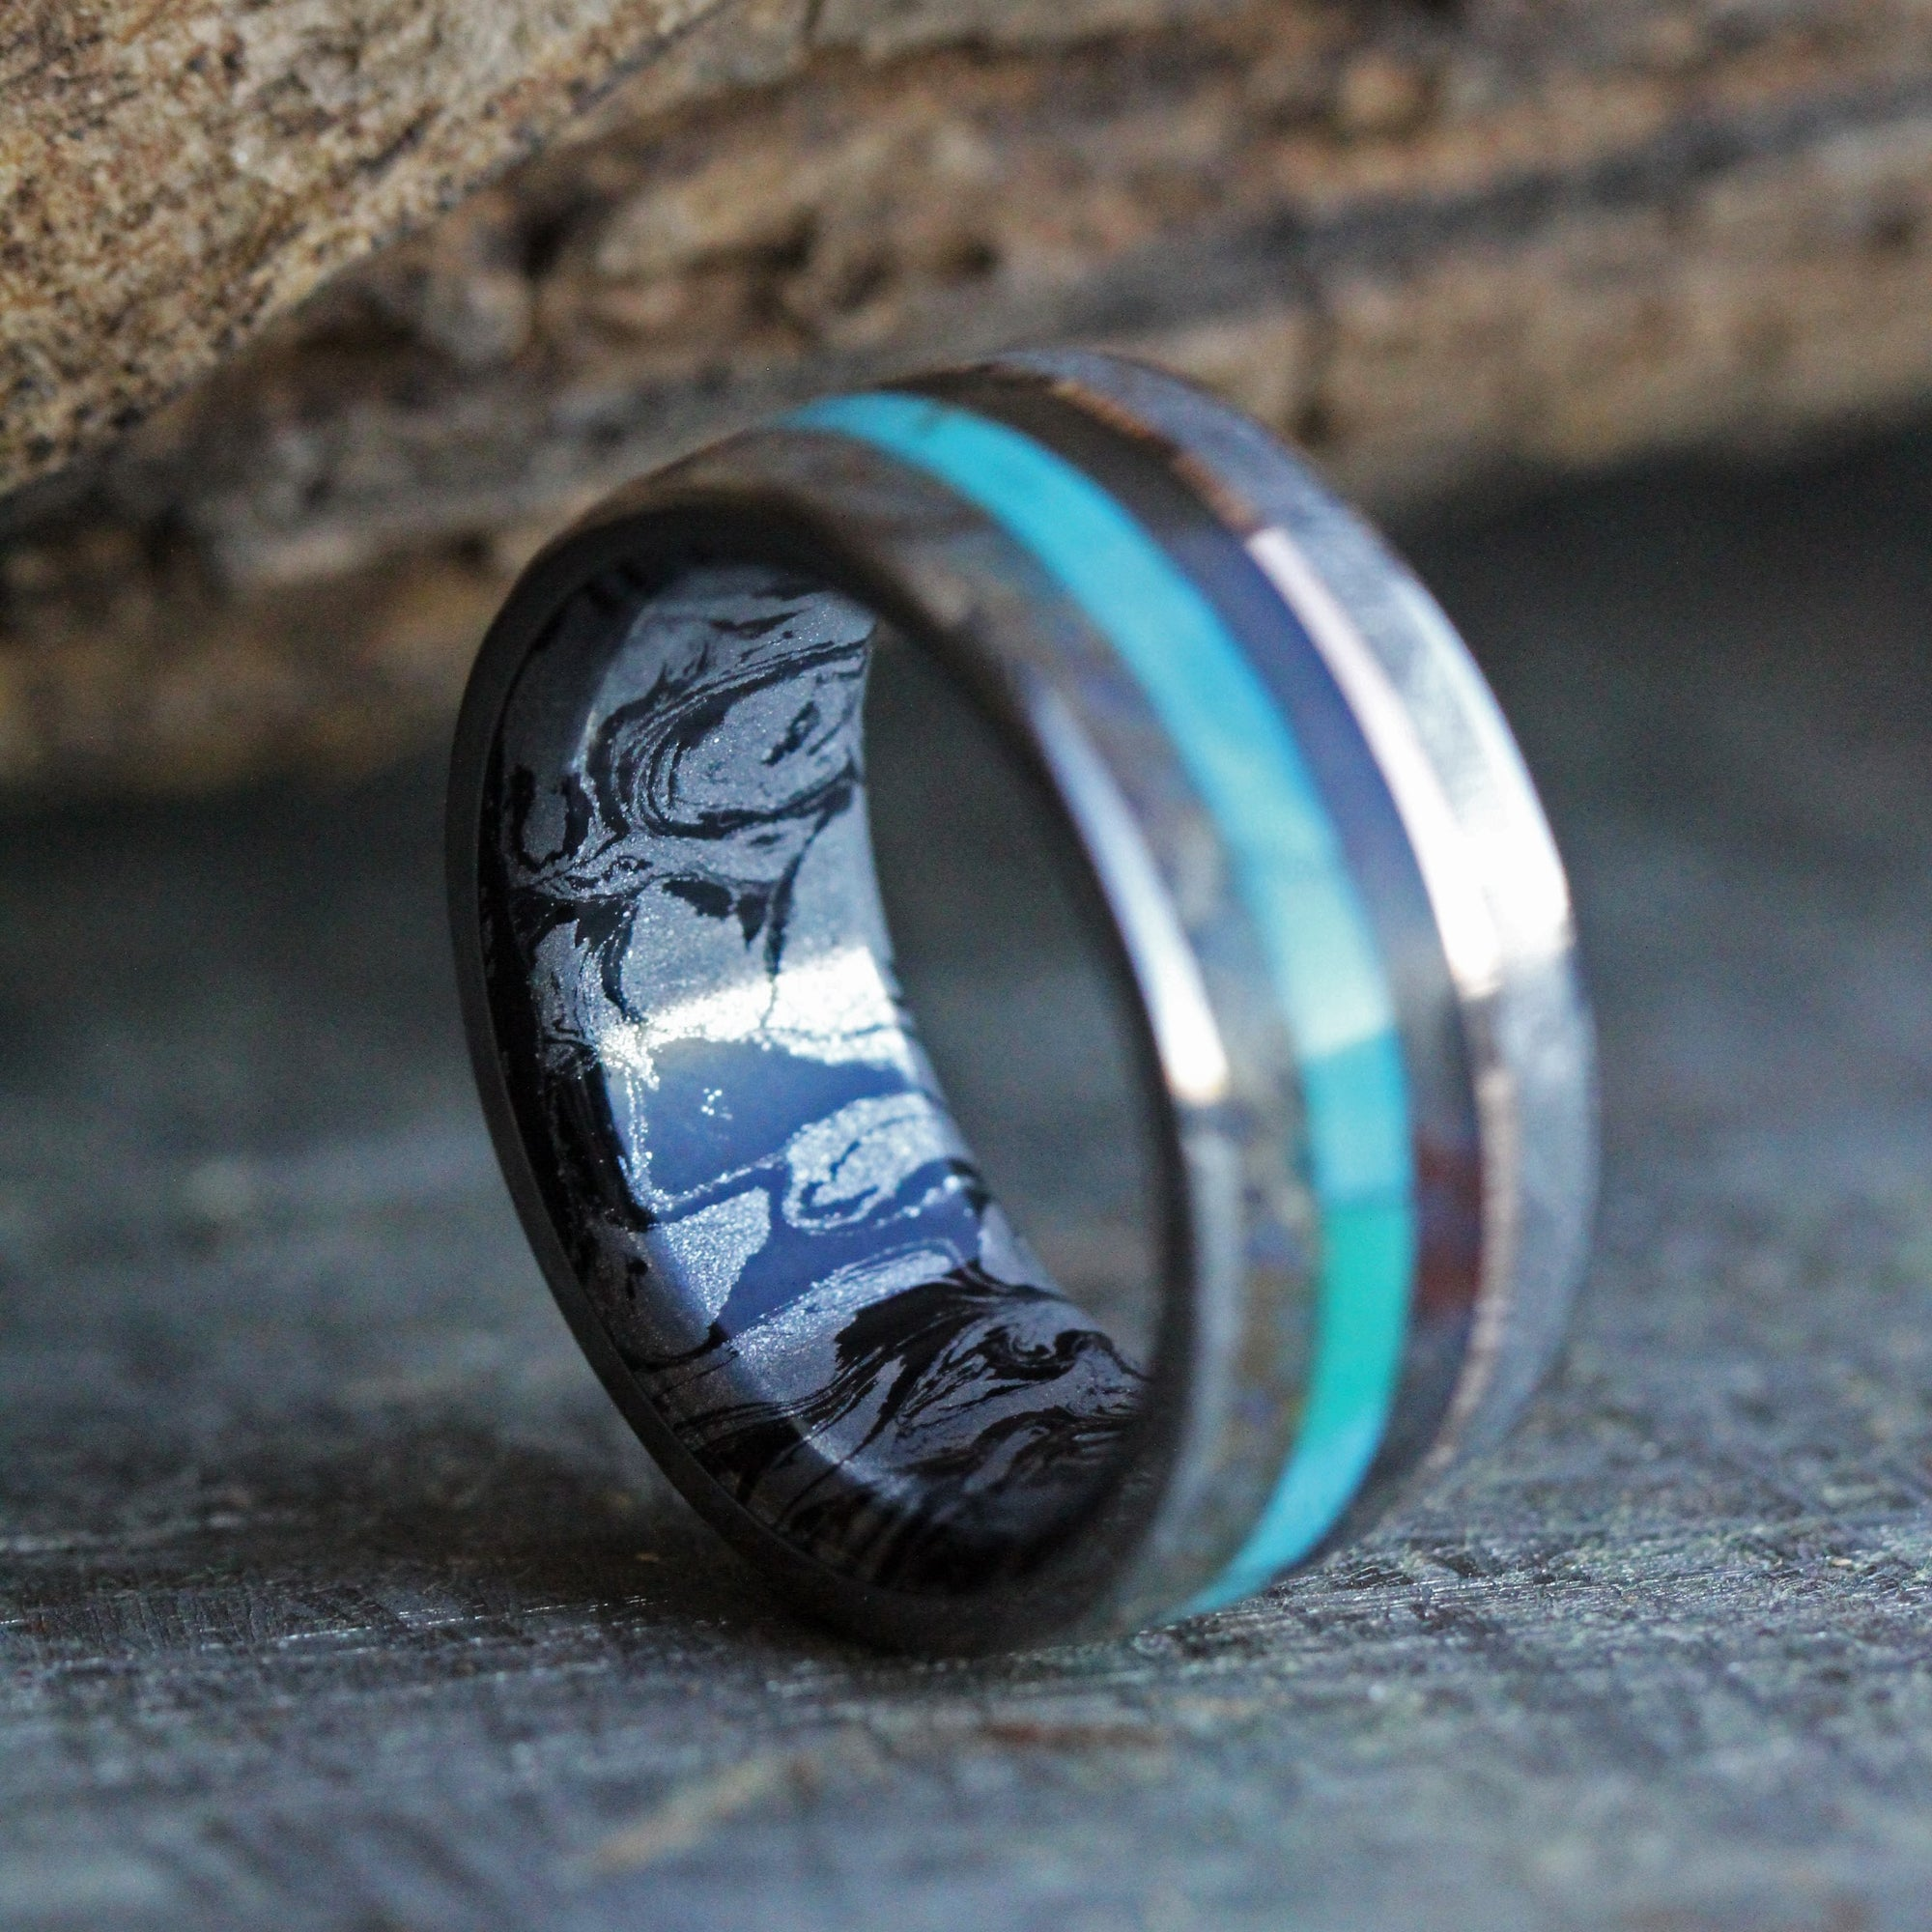 wood black ring rings inlays pin zirconium band gold gibeon made with petrified and rose custom wedding meteorite sleeve